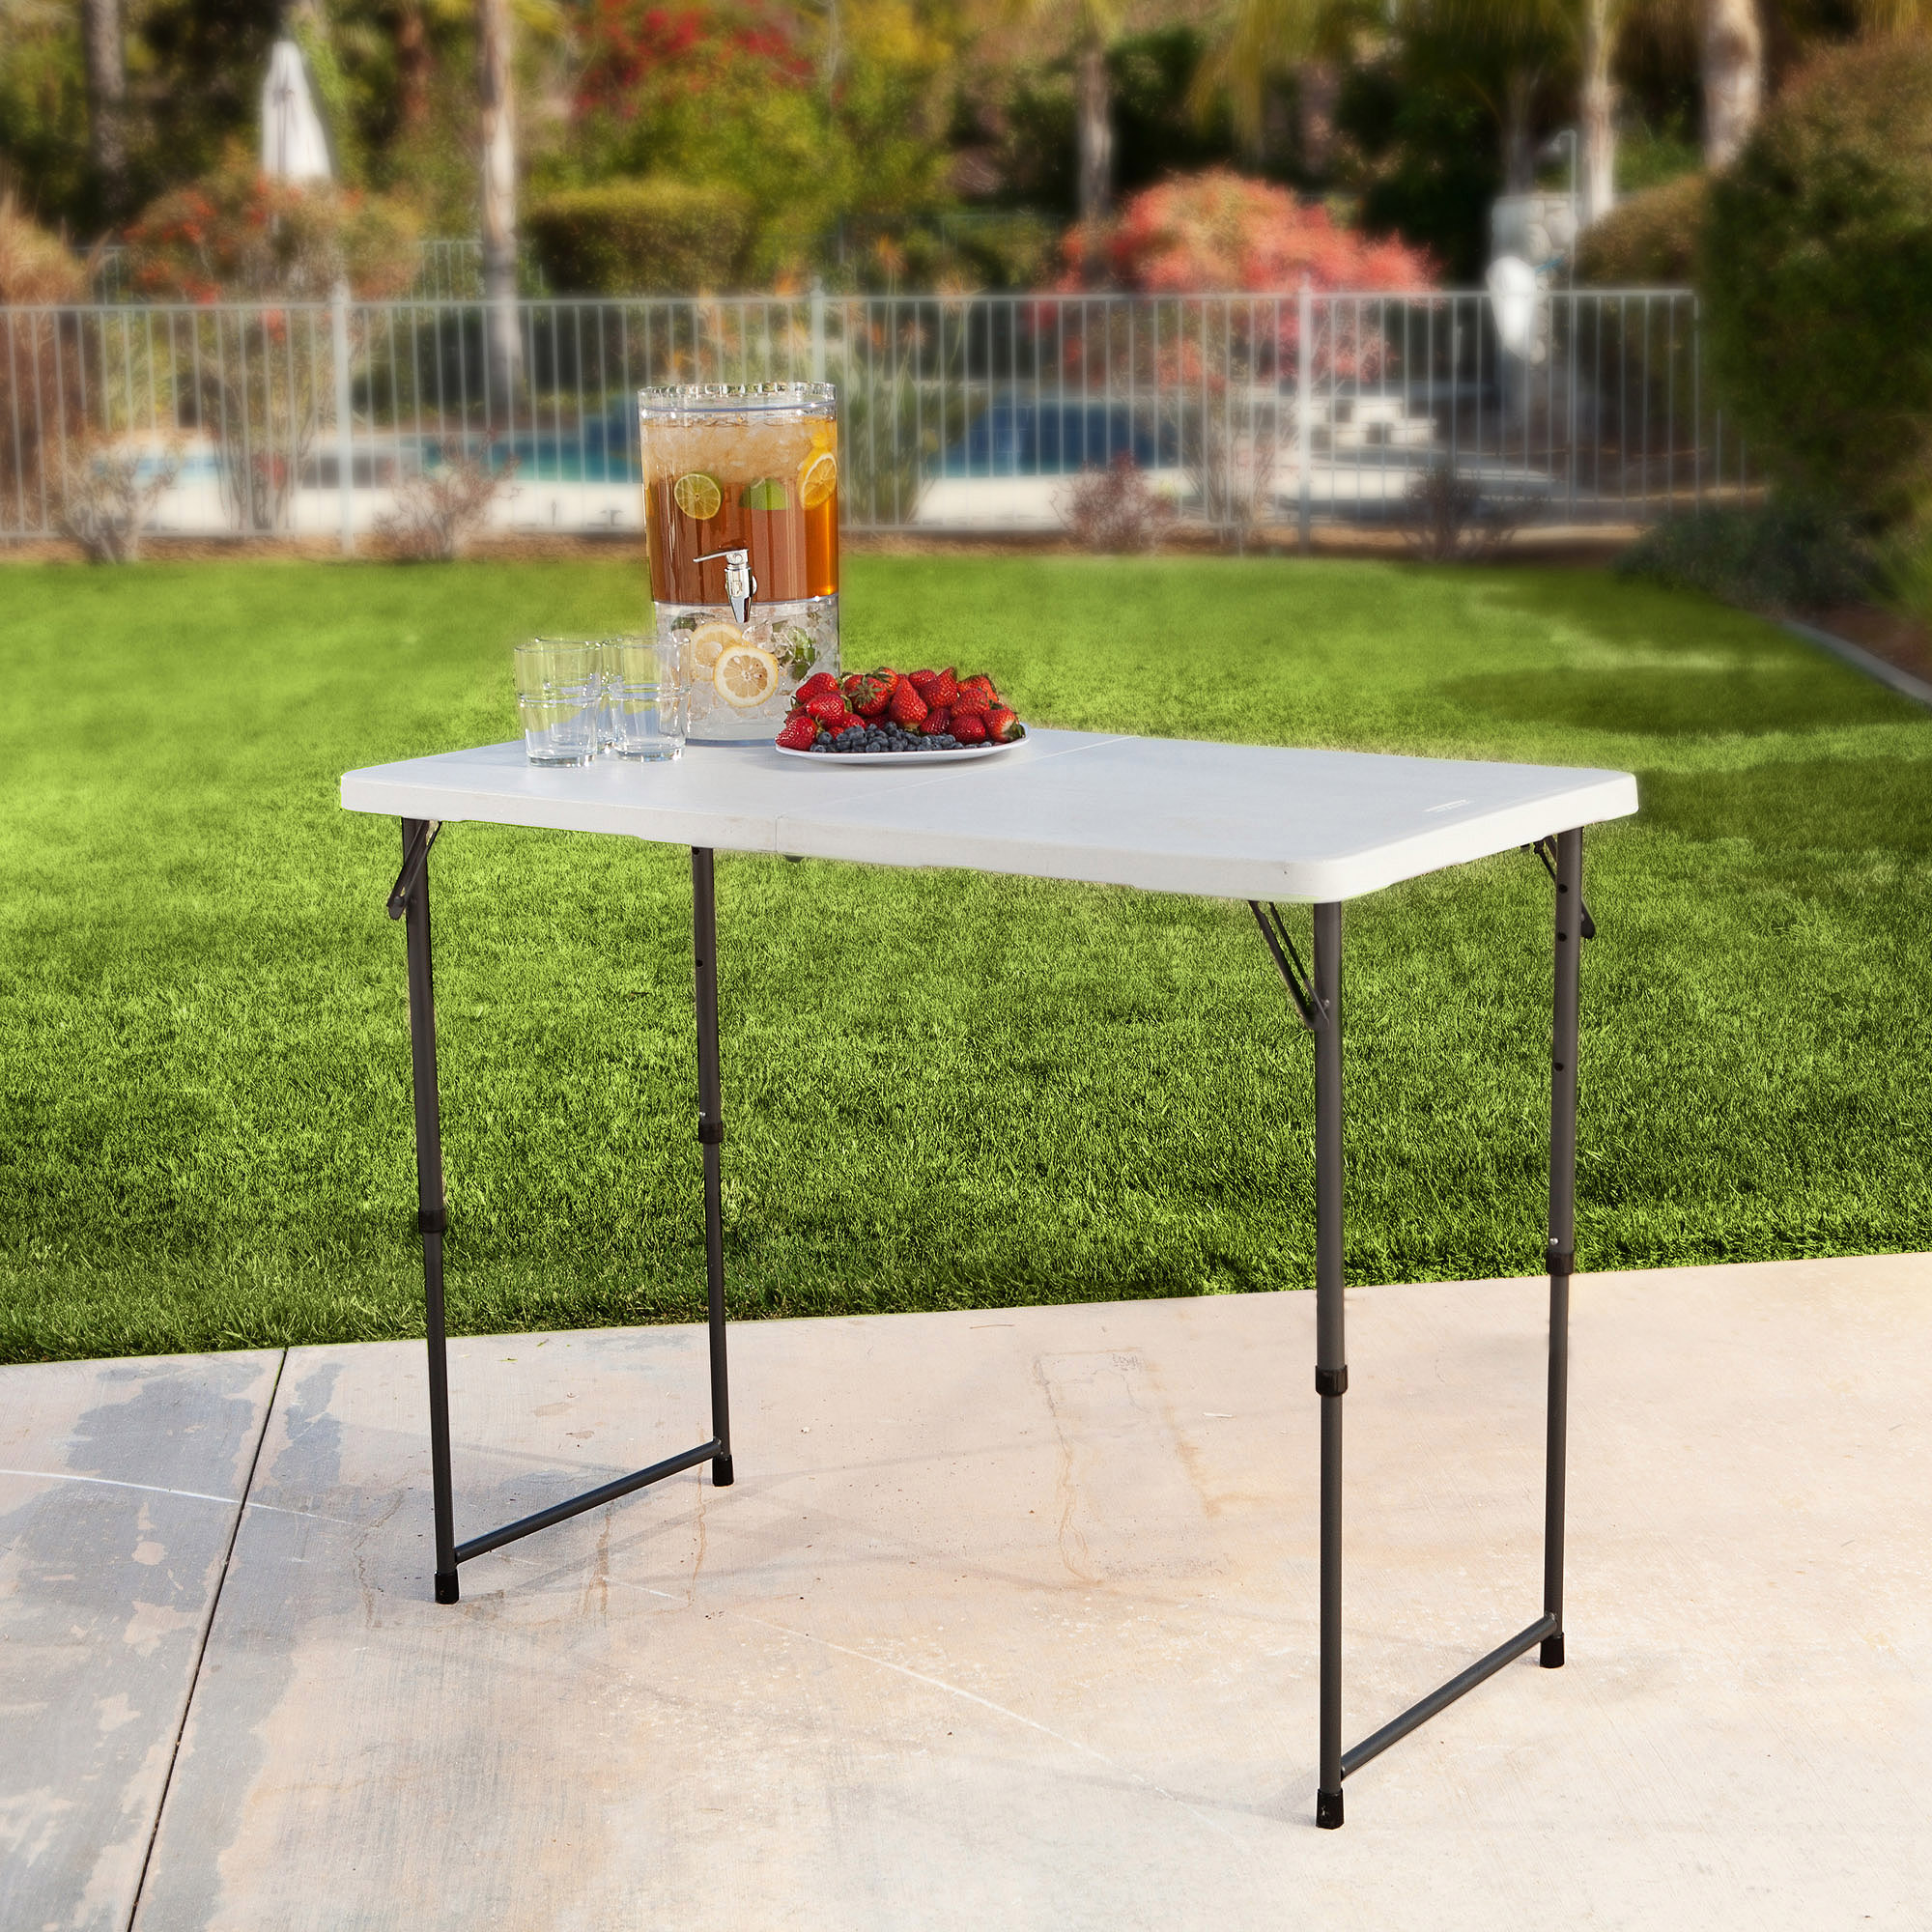 Lifetime 4u0027 Fold In Half Adjustable Table, White Granite   Walmart.com